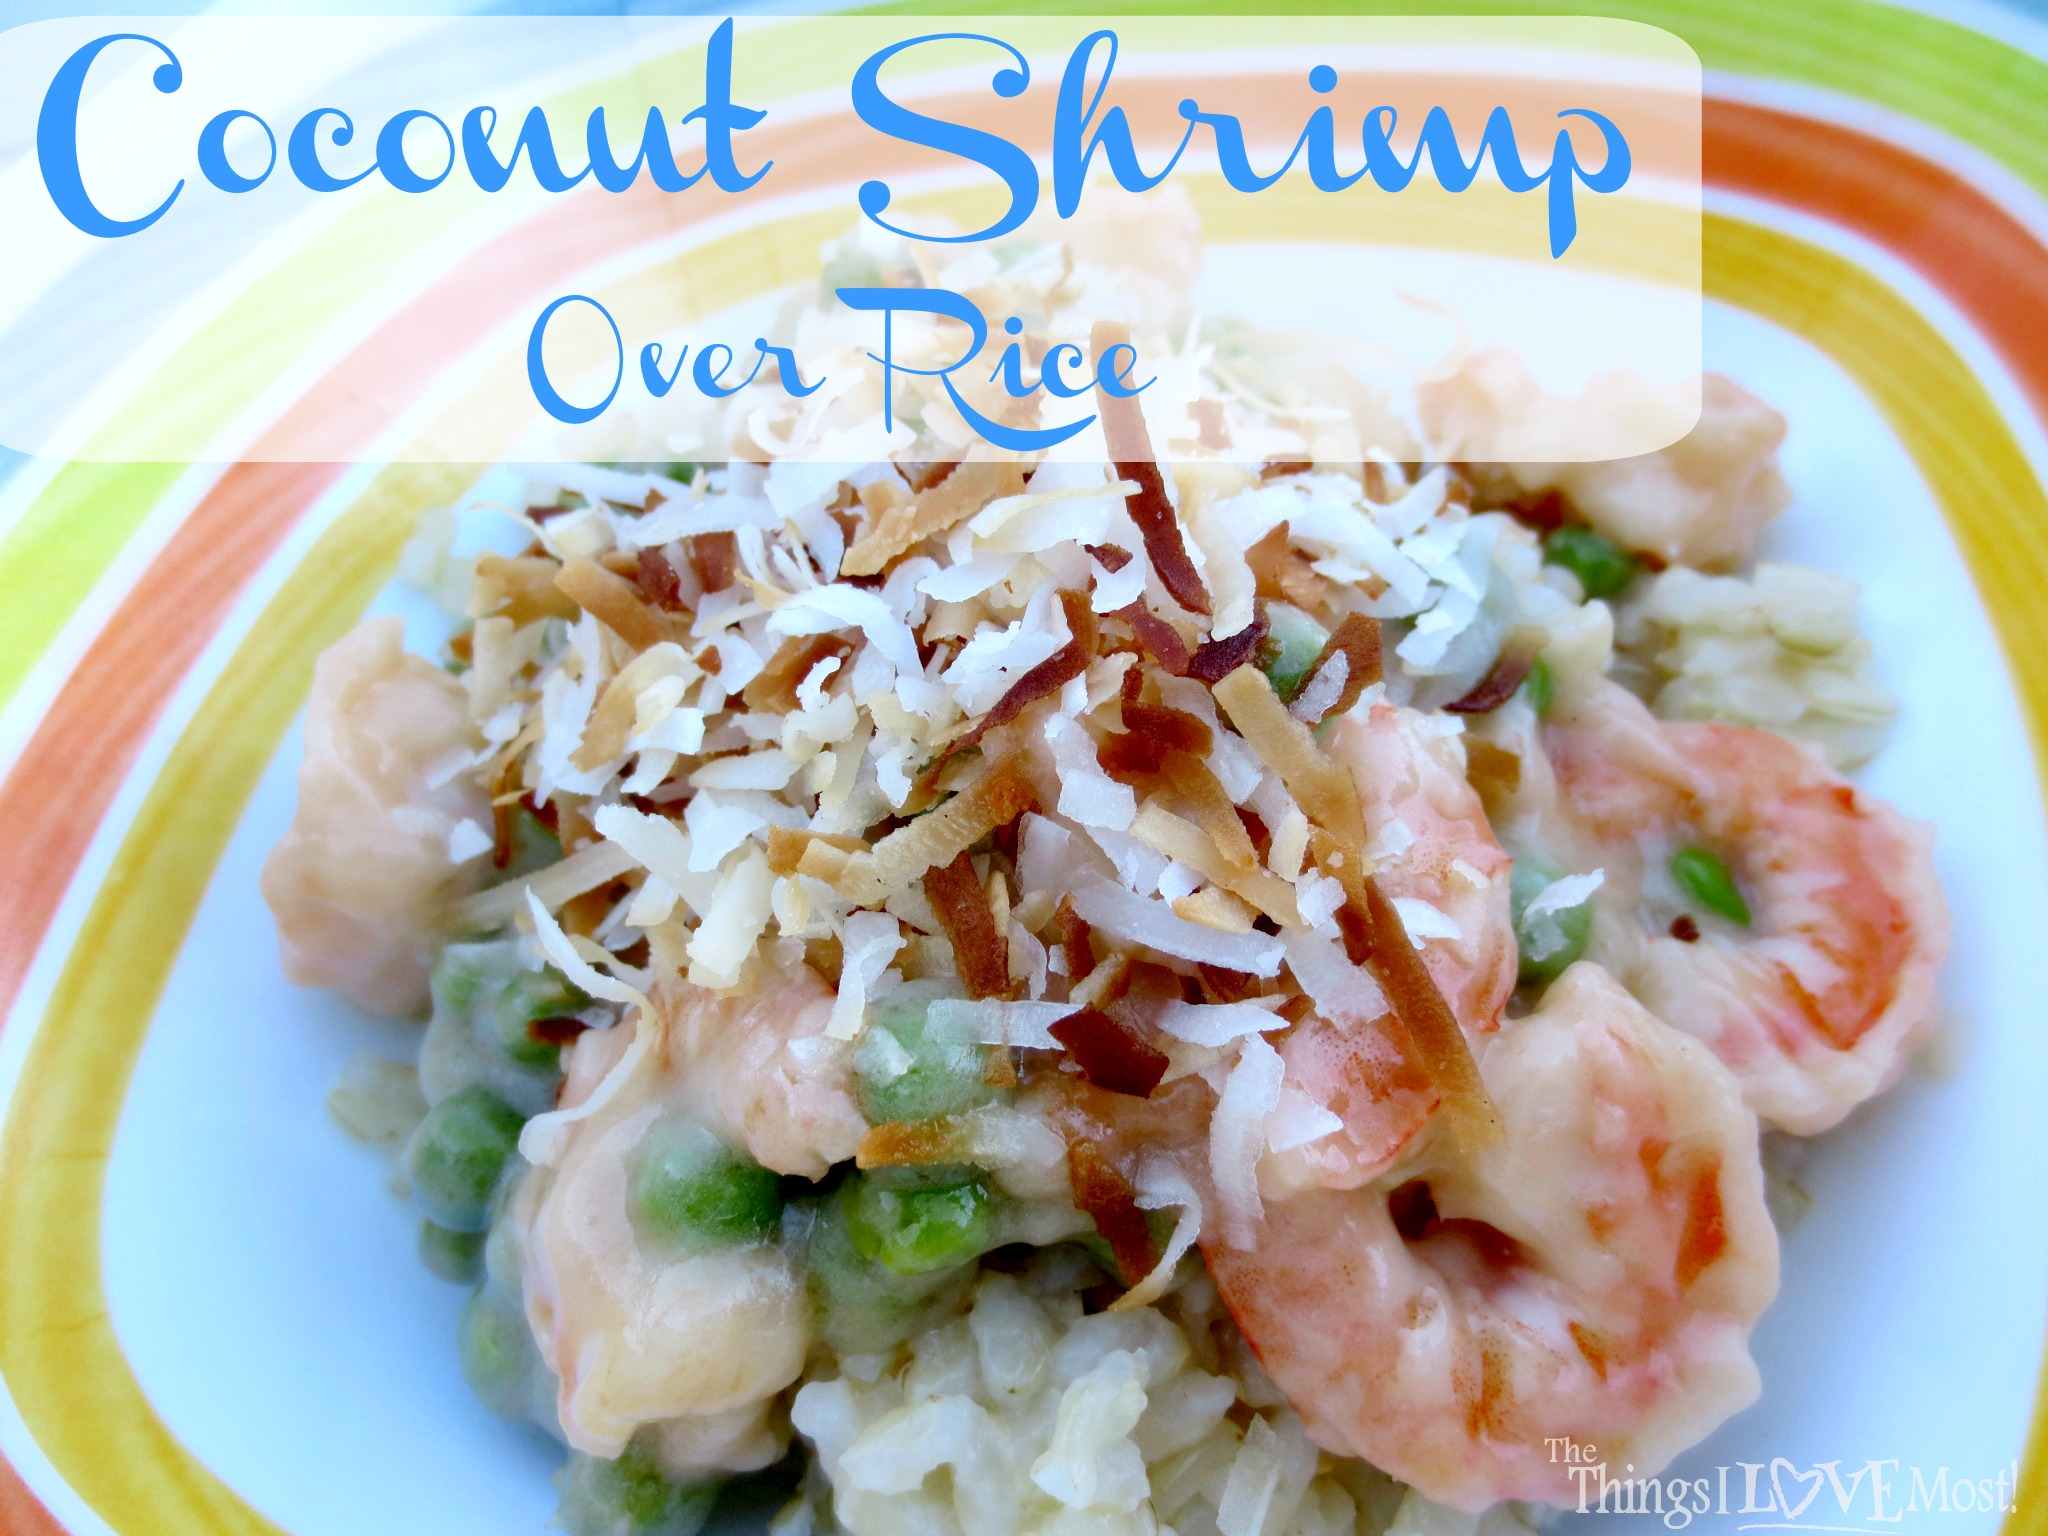 Coconut Shrimp Over Rice - The Things I Love Most